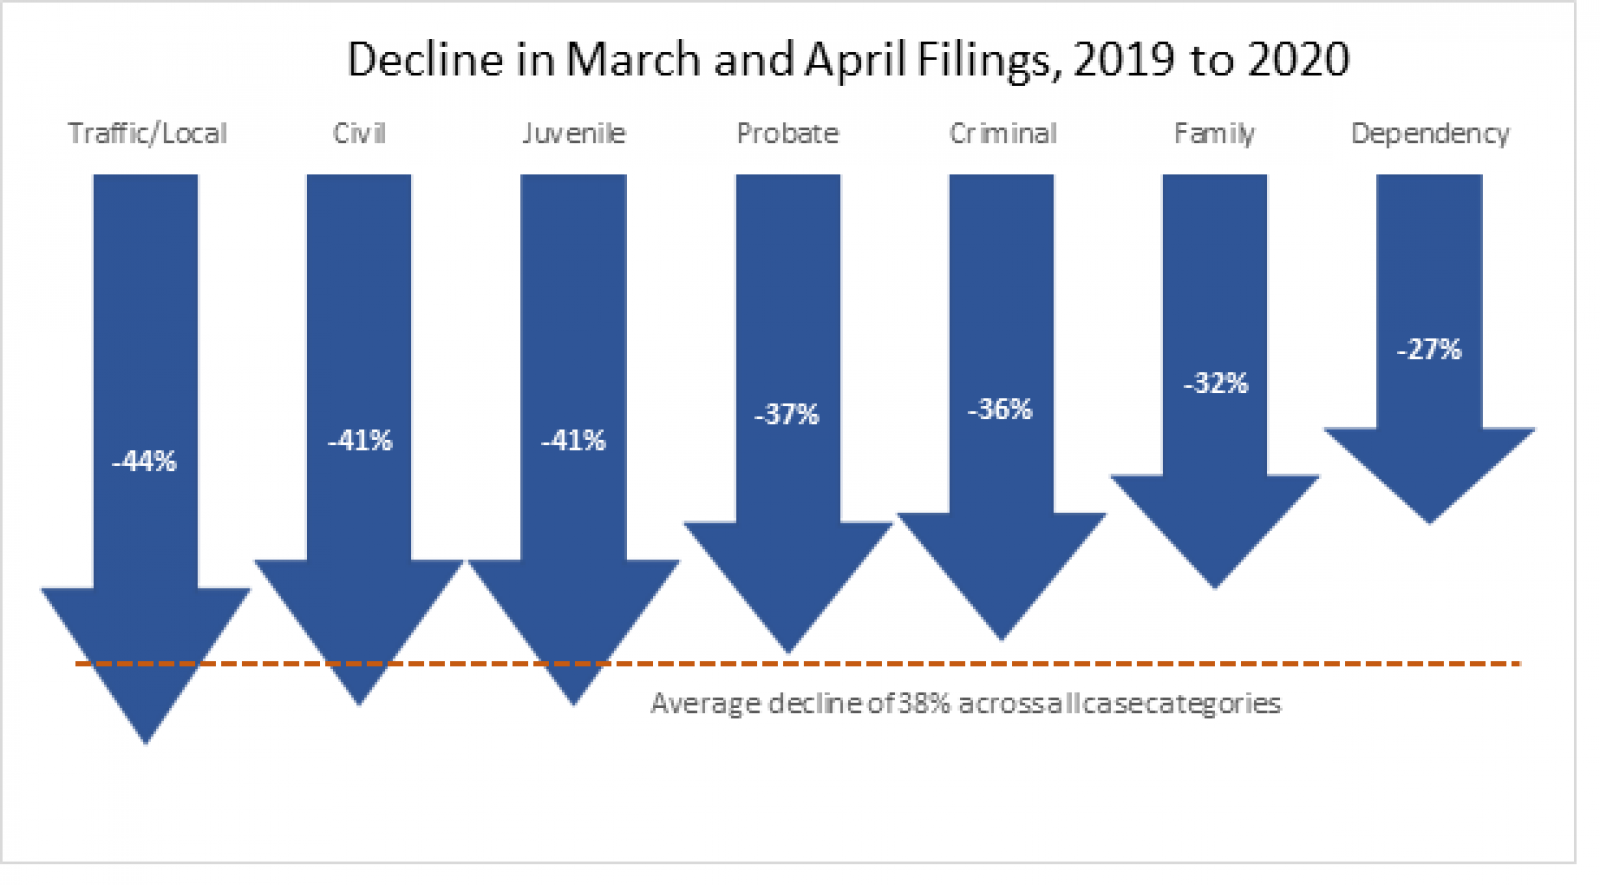 Case-Filings-March-and-April-2019-vs-2020 banner image